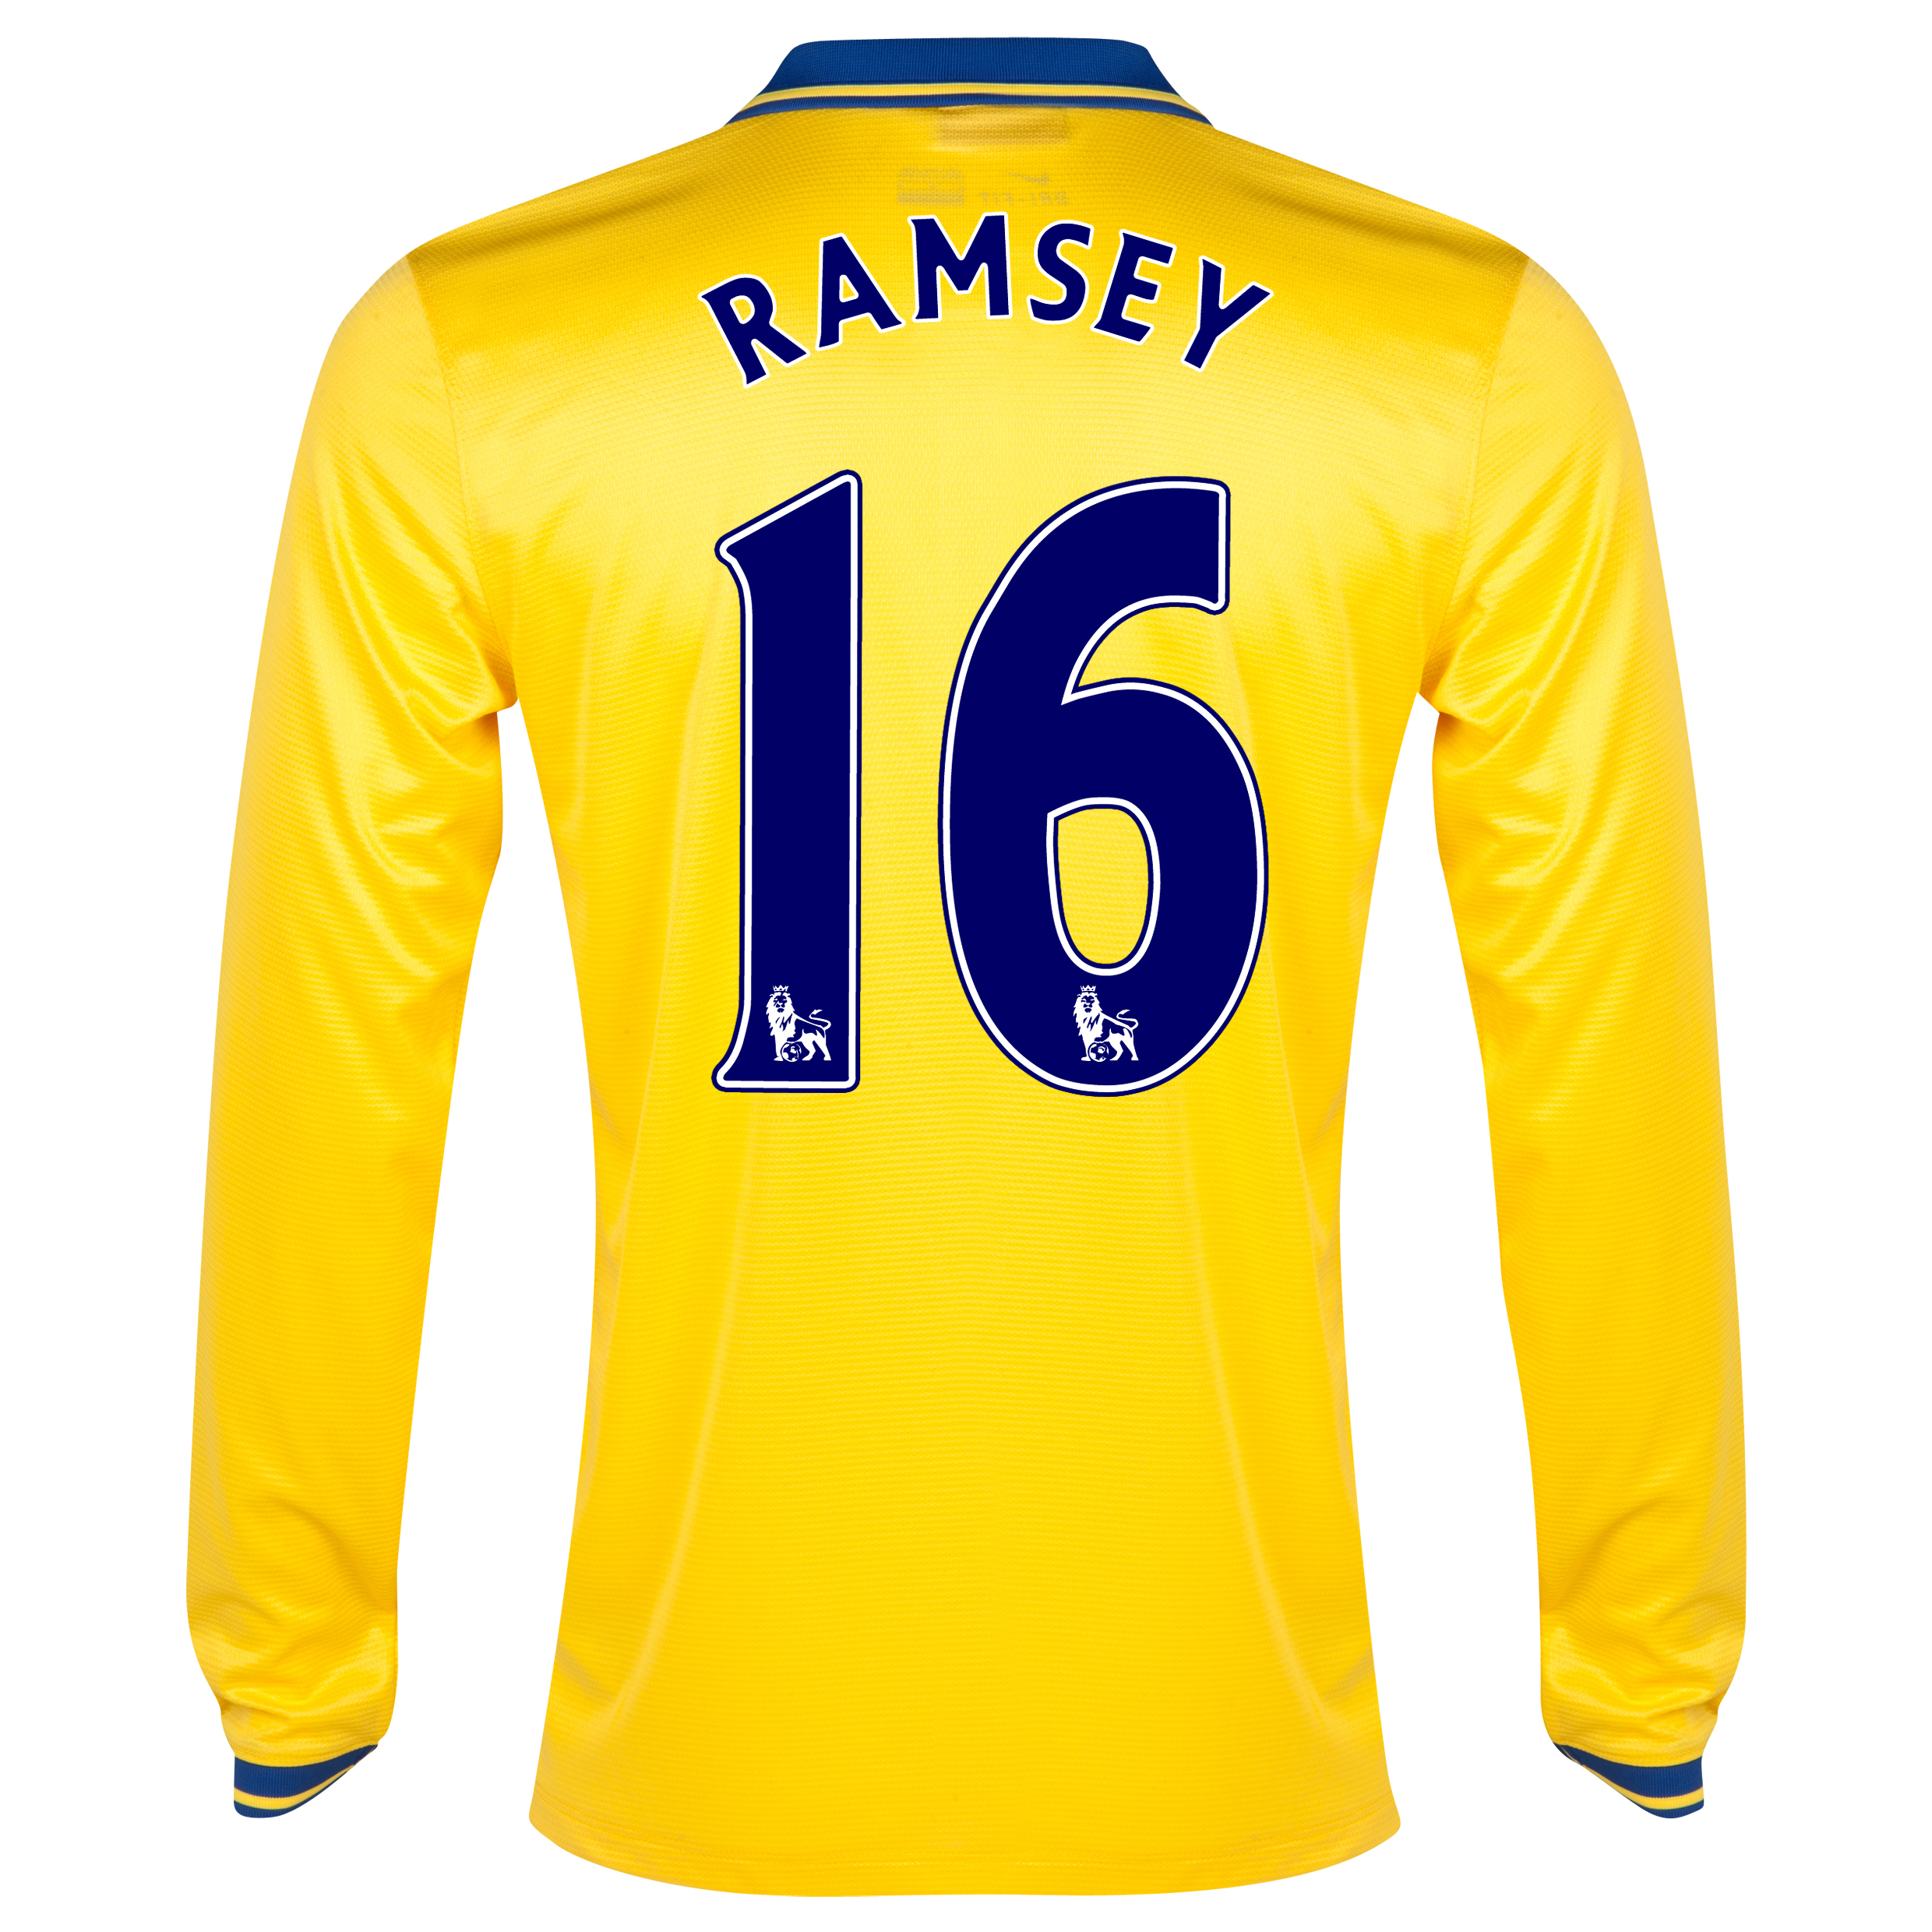 Arsenal Away Shirt 2013/14 Long Sleeved with Ramsey 16 printing